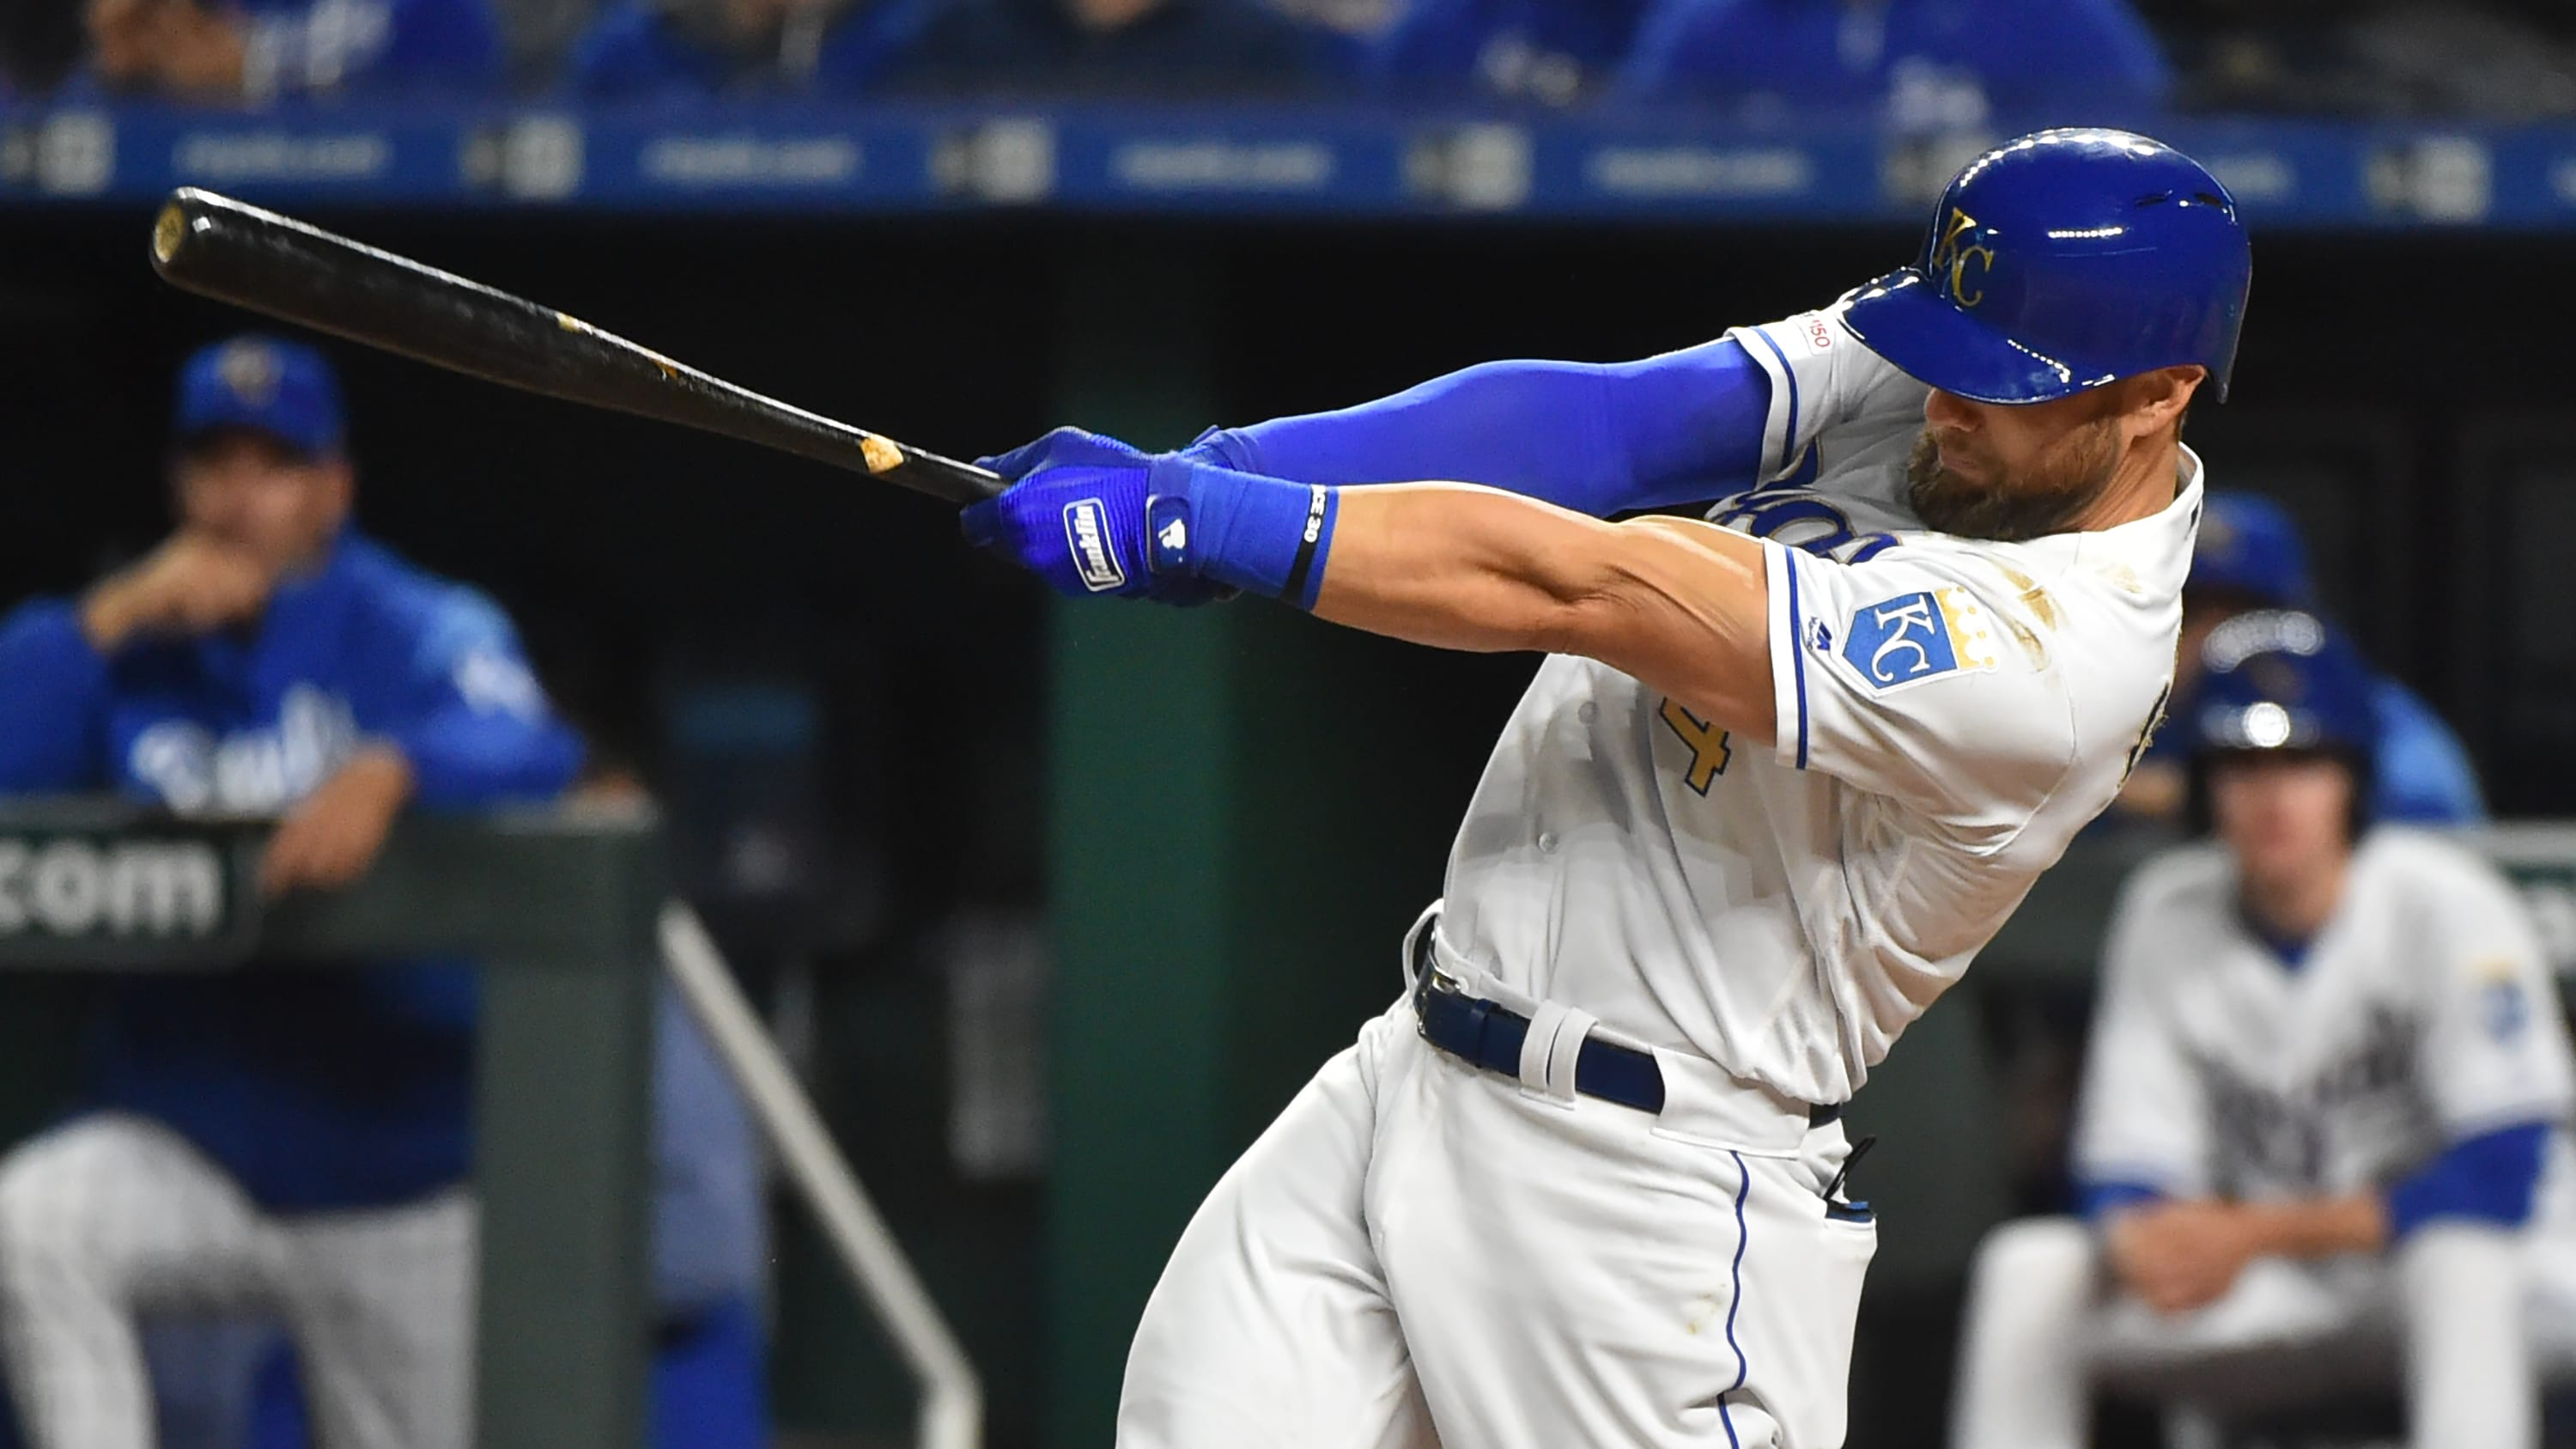 KANSAS CITY, MISSOURI - MAY 10: Alex Gordon #4 of the Kansas City Royals hits a home run in the fifth inning against the Philadelphia Phillies at Kauffman Stadium on May 10, 2019 in Kansas City, Missouri. It was Gordon's 1500th career hit.  (Photo by Ed Zurga/Getty Images)